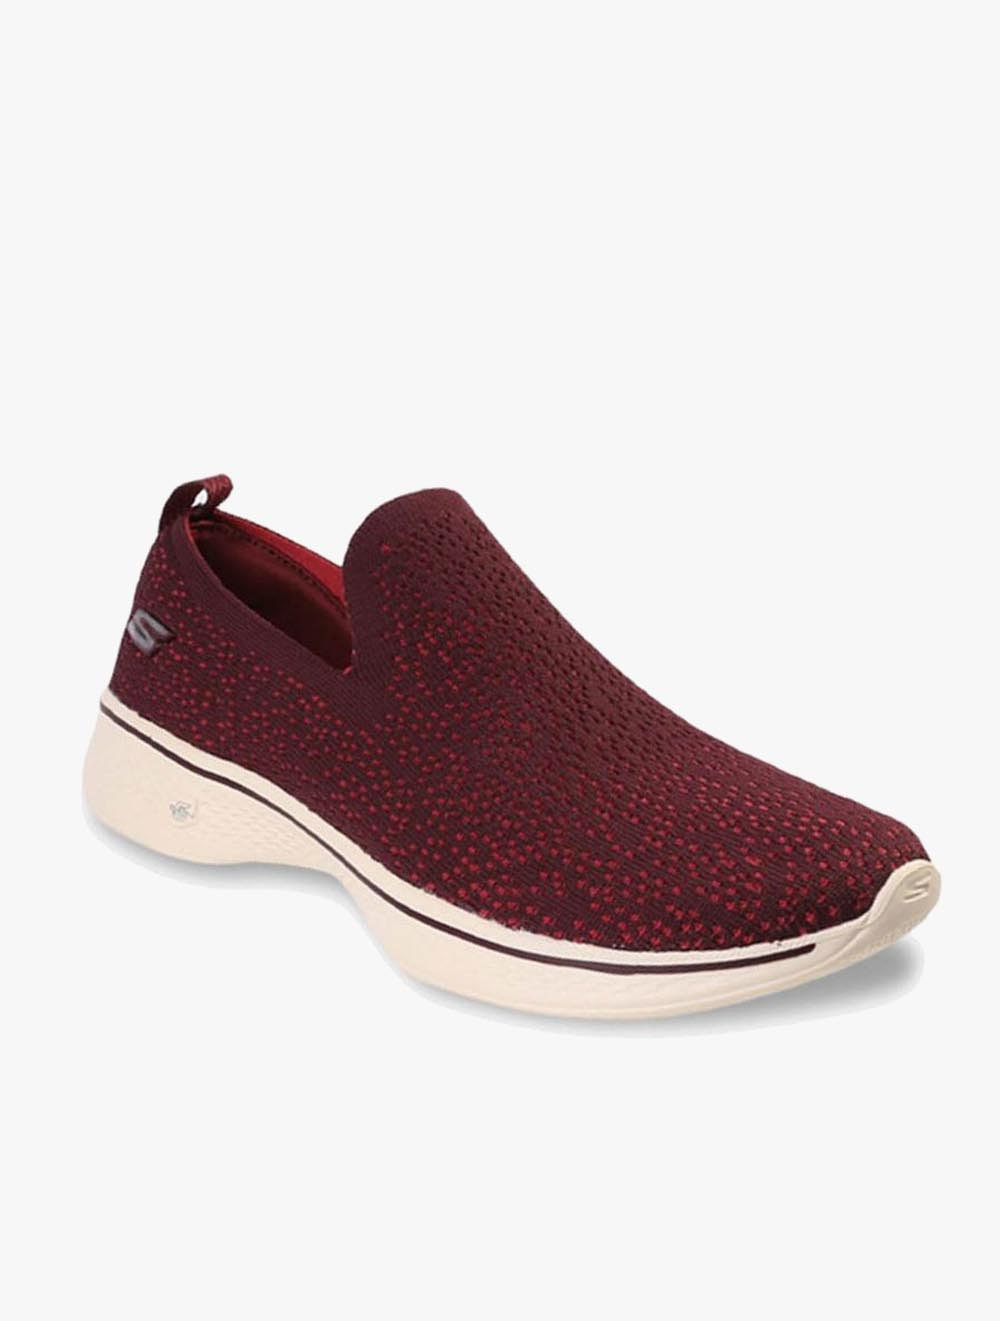 Shop Women's Shoes From Skechers Planet Sports on